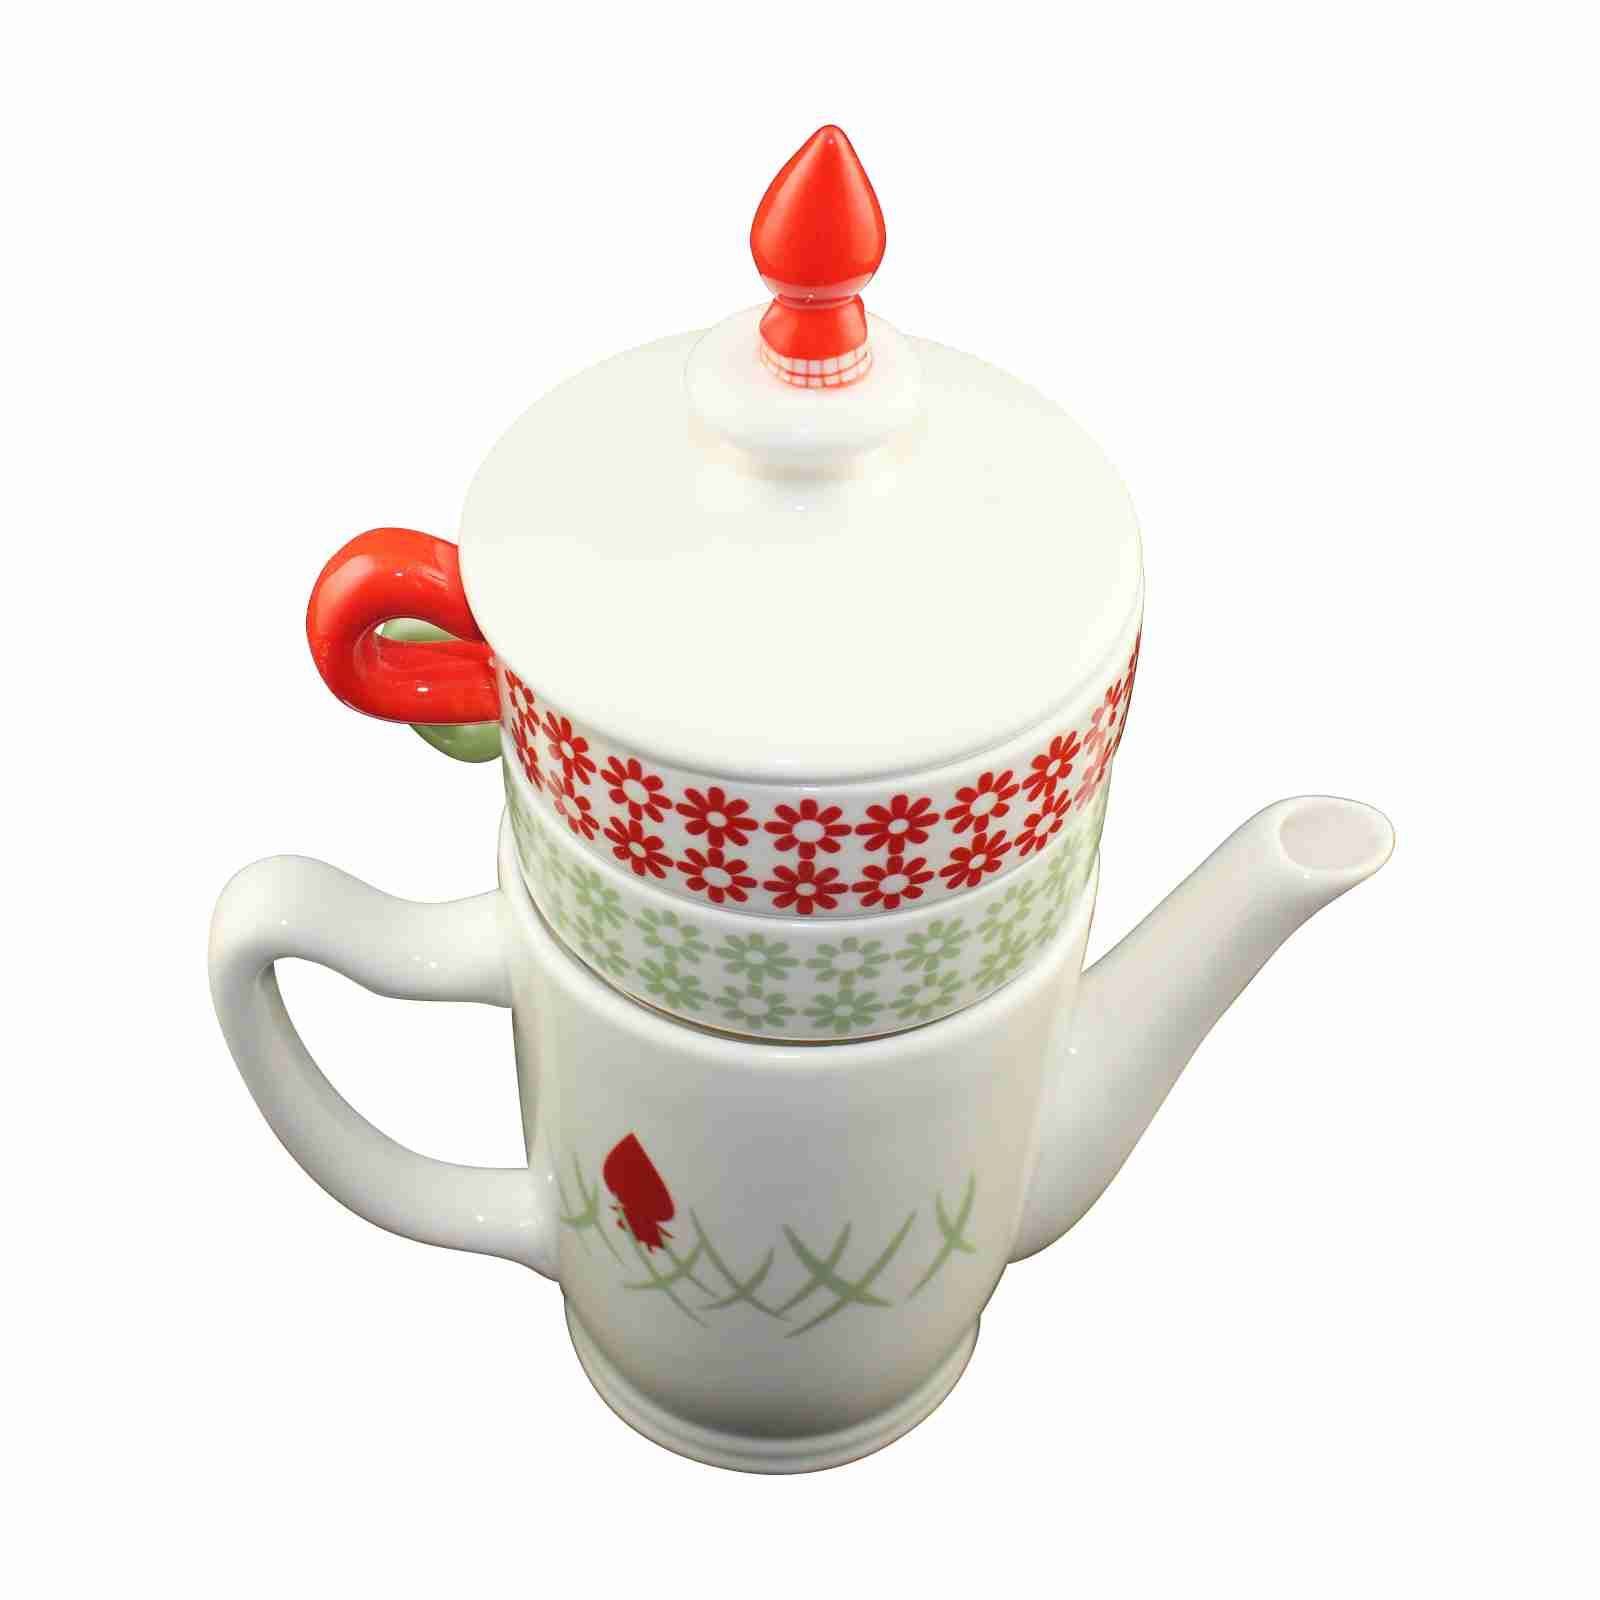 Fun Japanese Designed Teasets Arriving Just in Time for Xmas 2015